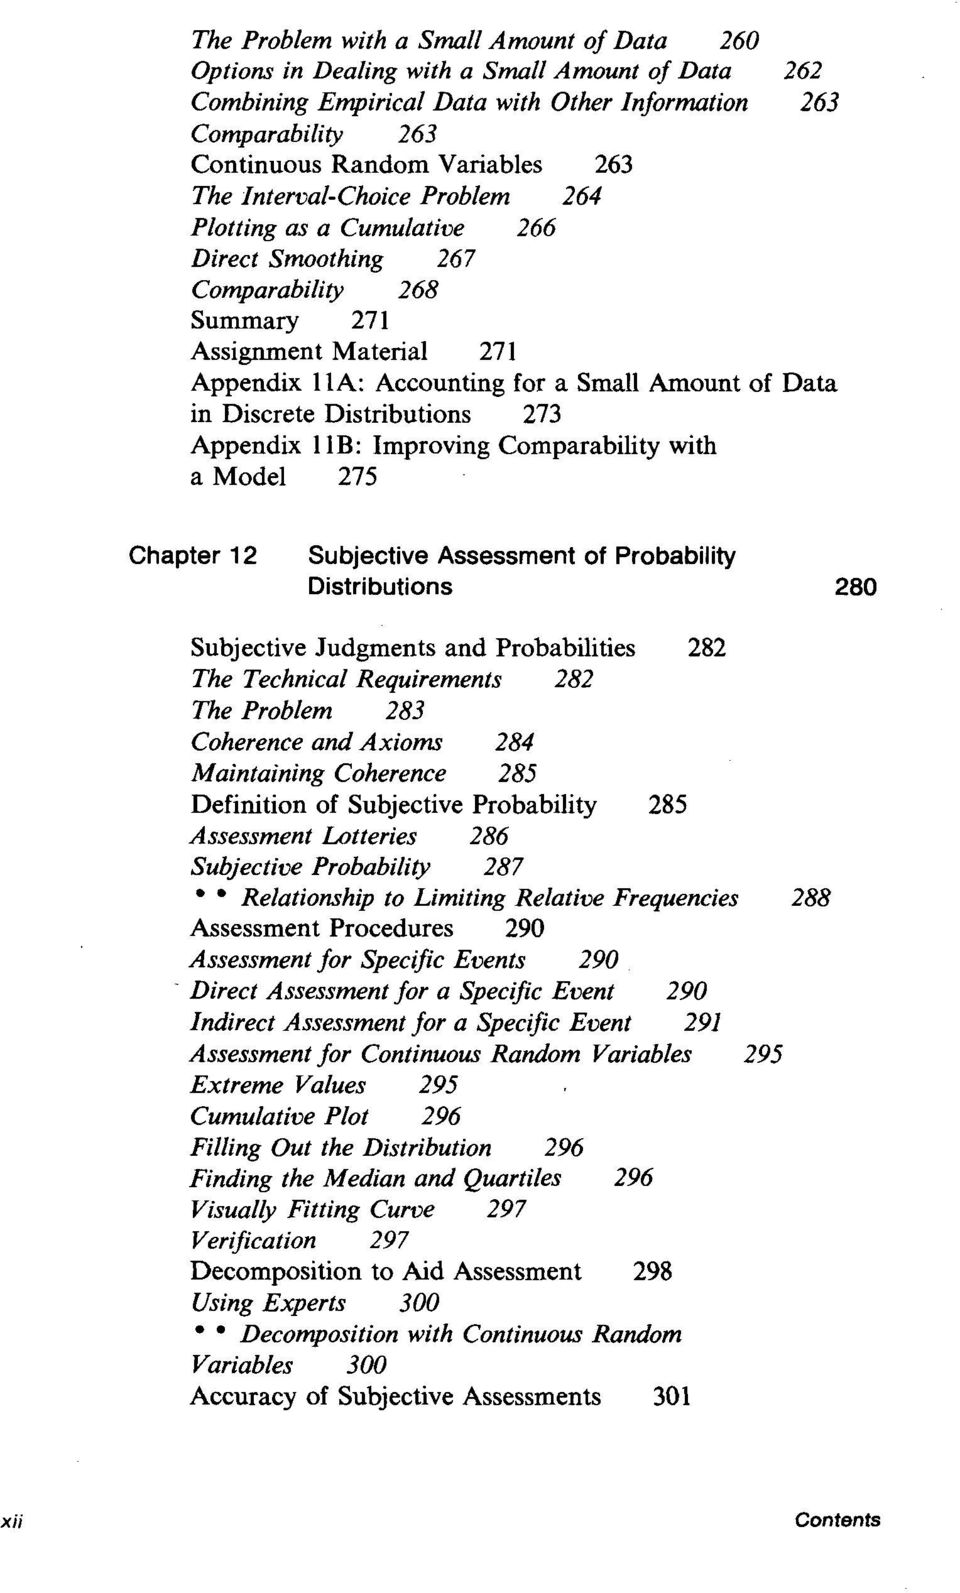 Discrete Distributions 273 Appendix 1 IB: Improving Comparability with a Model 275 Chapter 12 Subjective Assessment of Probability Distributions 280 Subjective Judgments and Probabilities 282 The